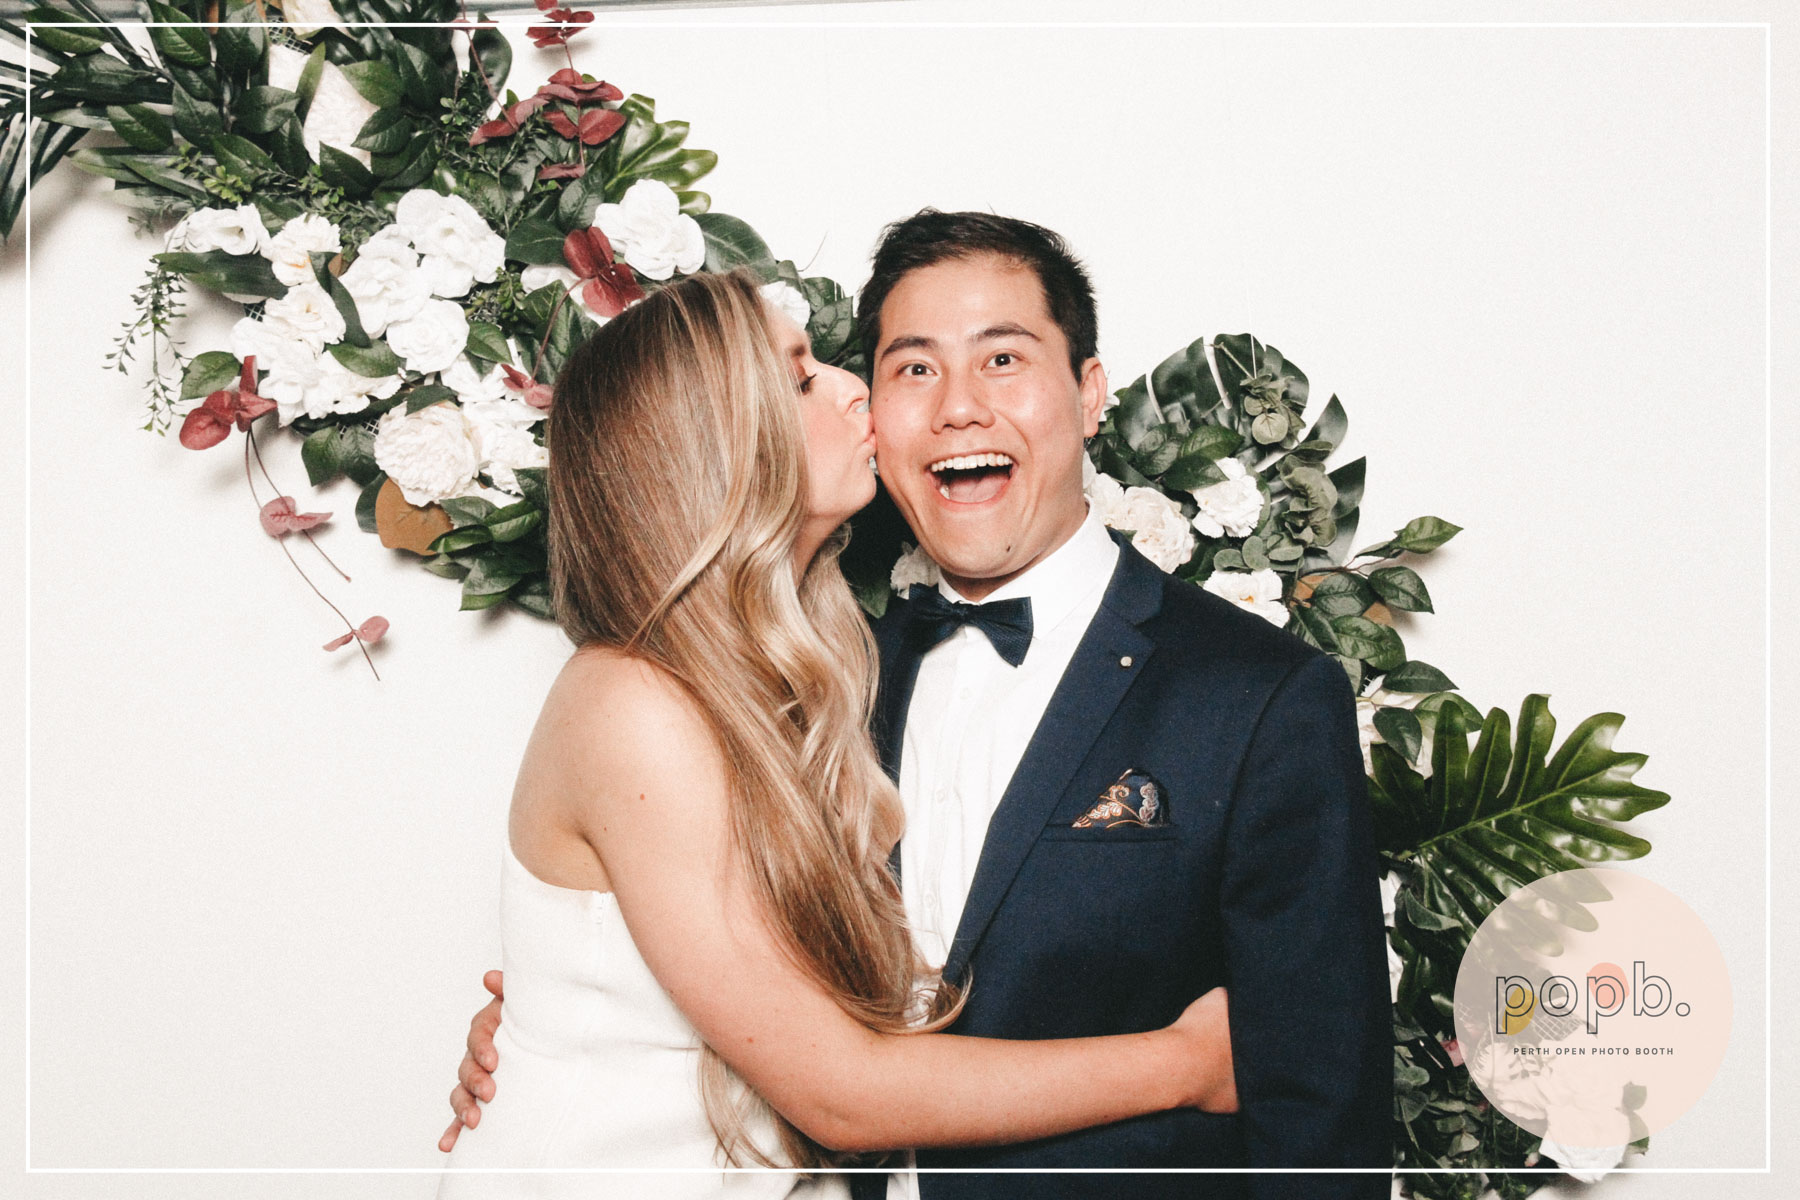 simon + tayah's engagement party - pASSWORD: PROVIDED ON THE night- ALL LOWERCASE -